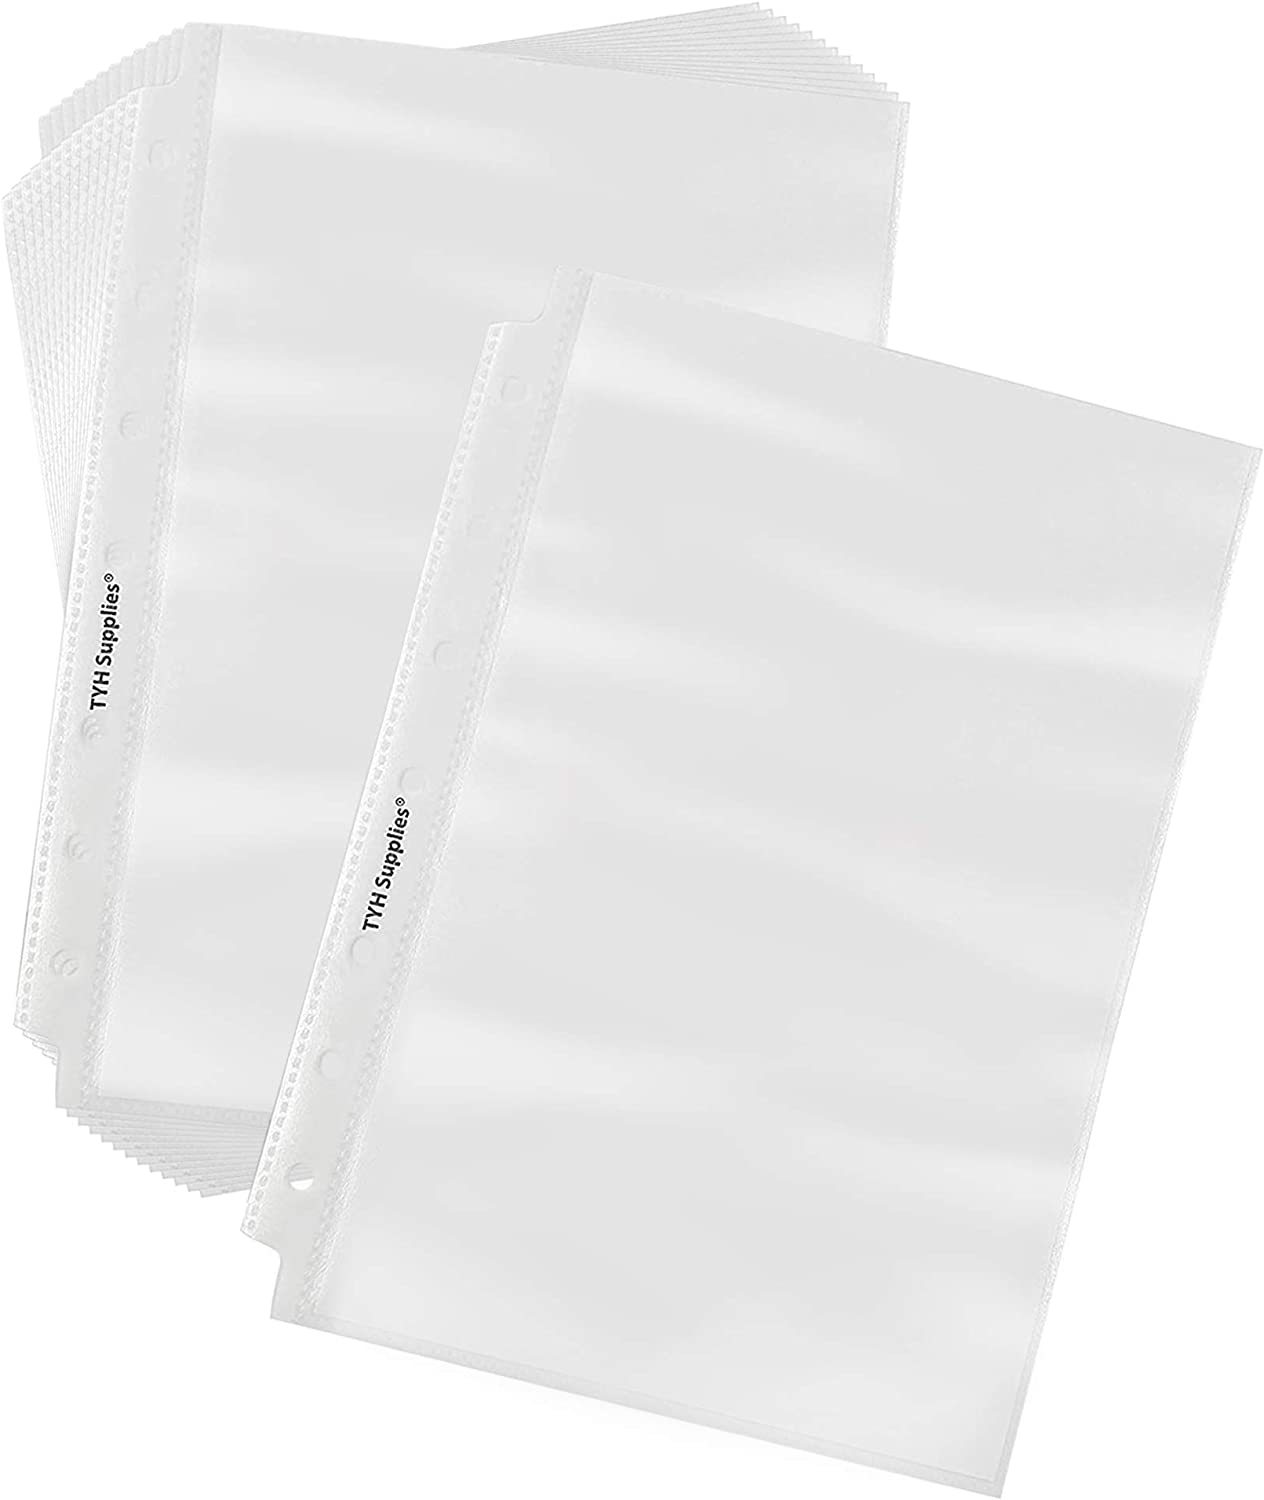 TYH Supplies 100-Pack Economy 7 Hole Half Page Small Clear Mini Sheet Protectors 5.5 x 8.5 Inches A5 Non Vinyl Acid Free